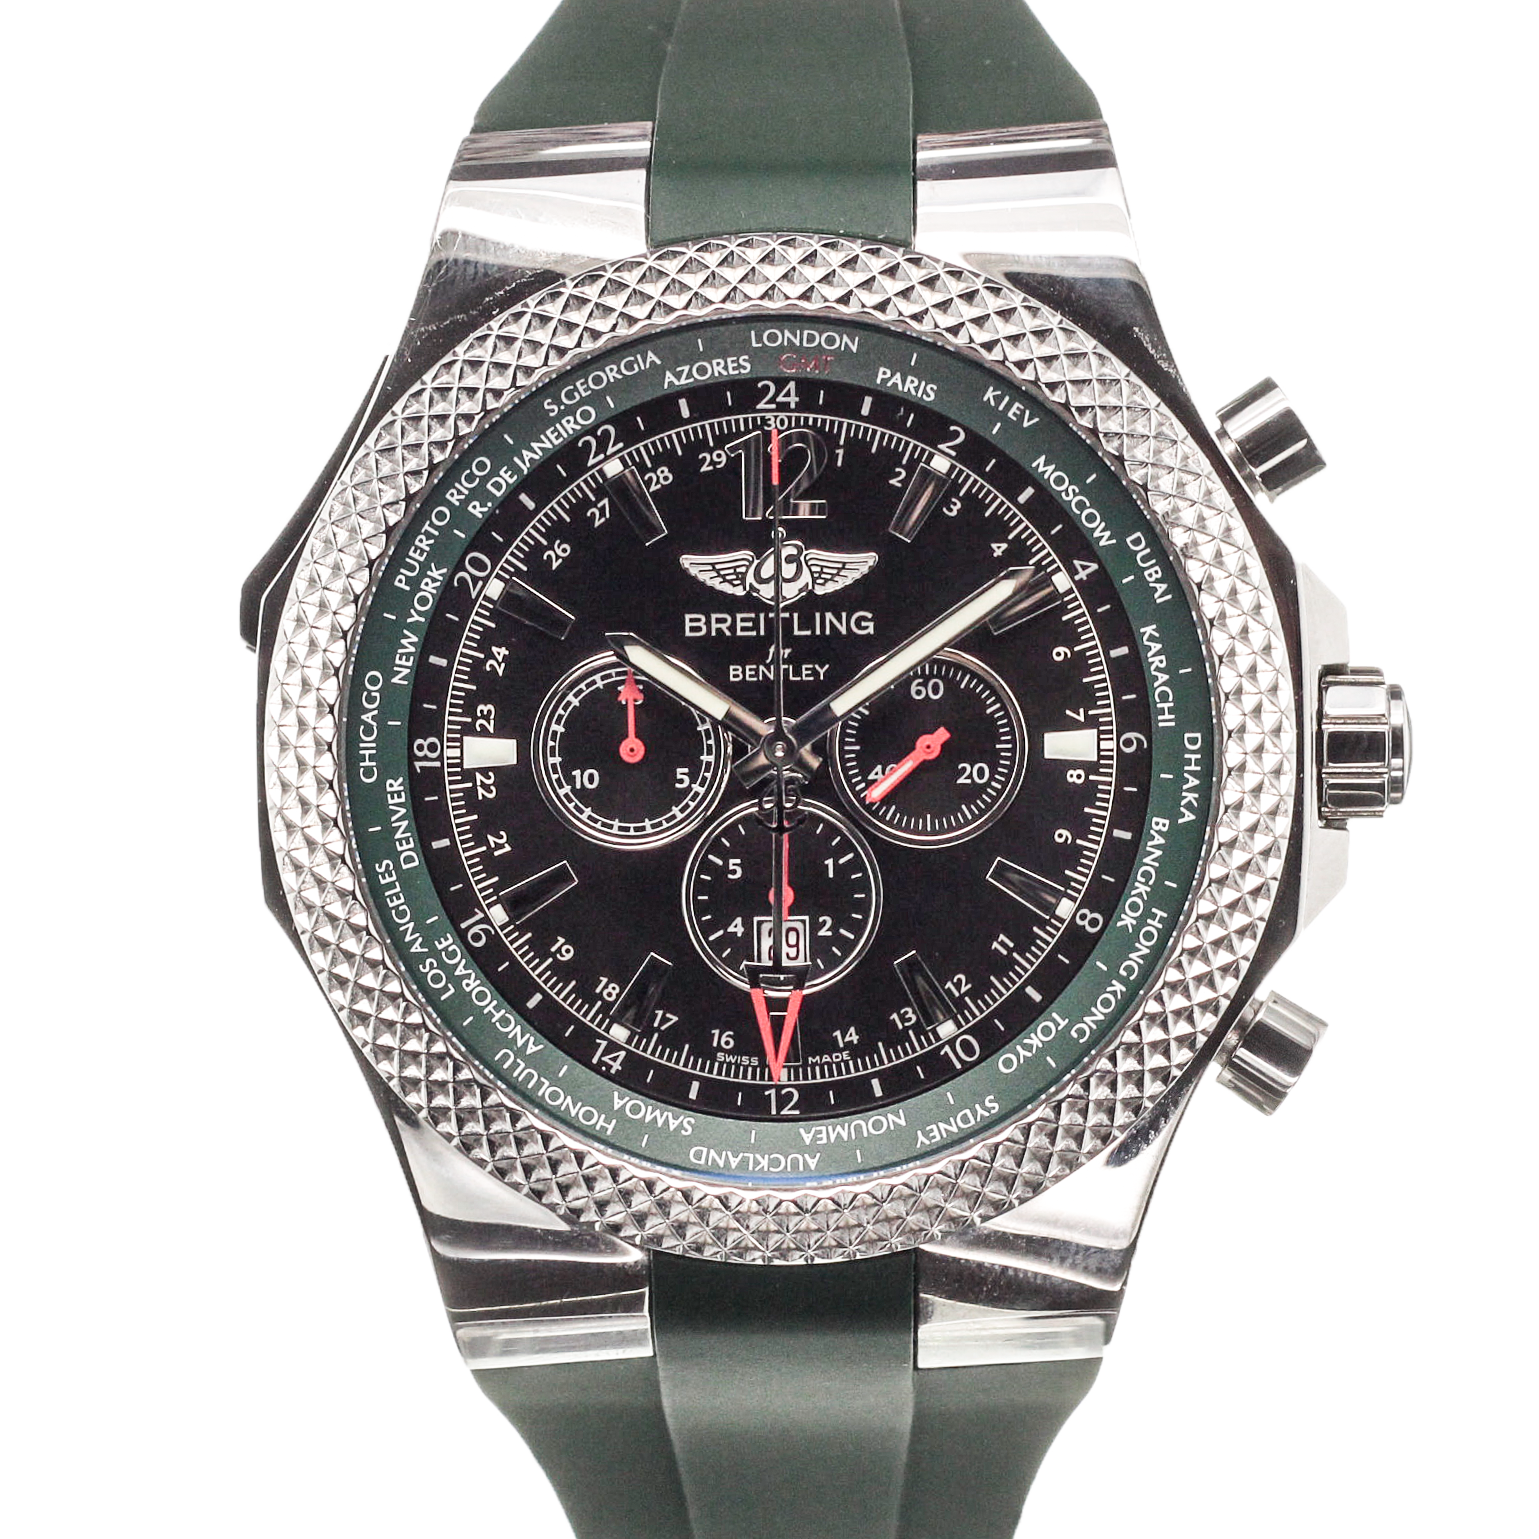 bentley gmt steel bracelet main breitling watches chronograph watch essential collection black with unitime on dial in